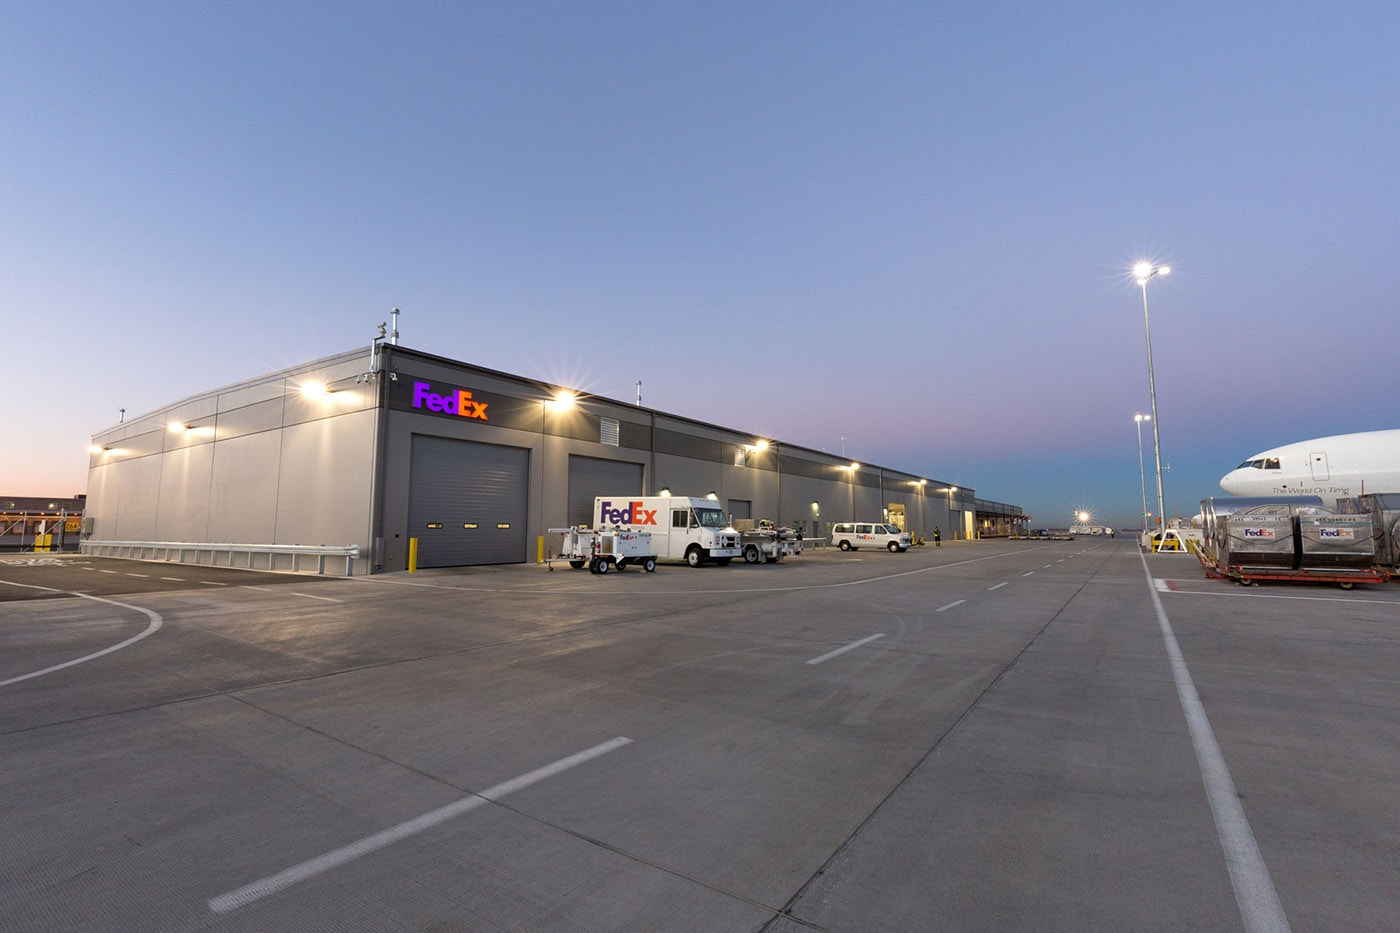 due to the redevelopment of the salt lake city international airport fedex relocated from the space they were previously in at the airport